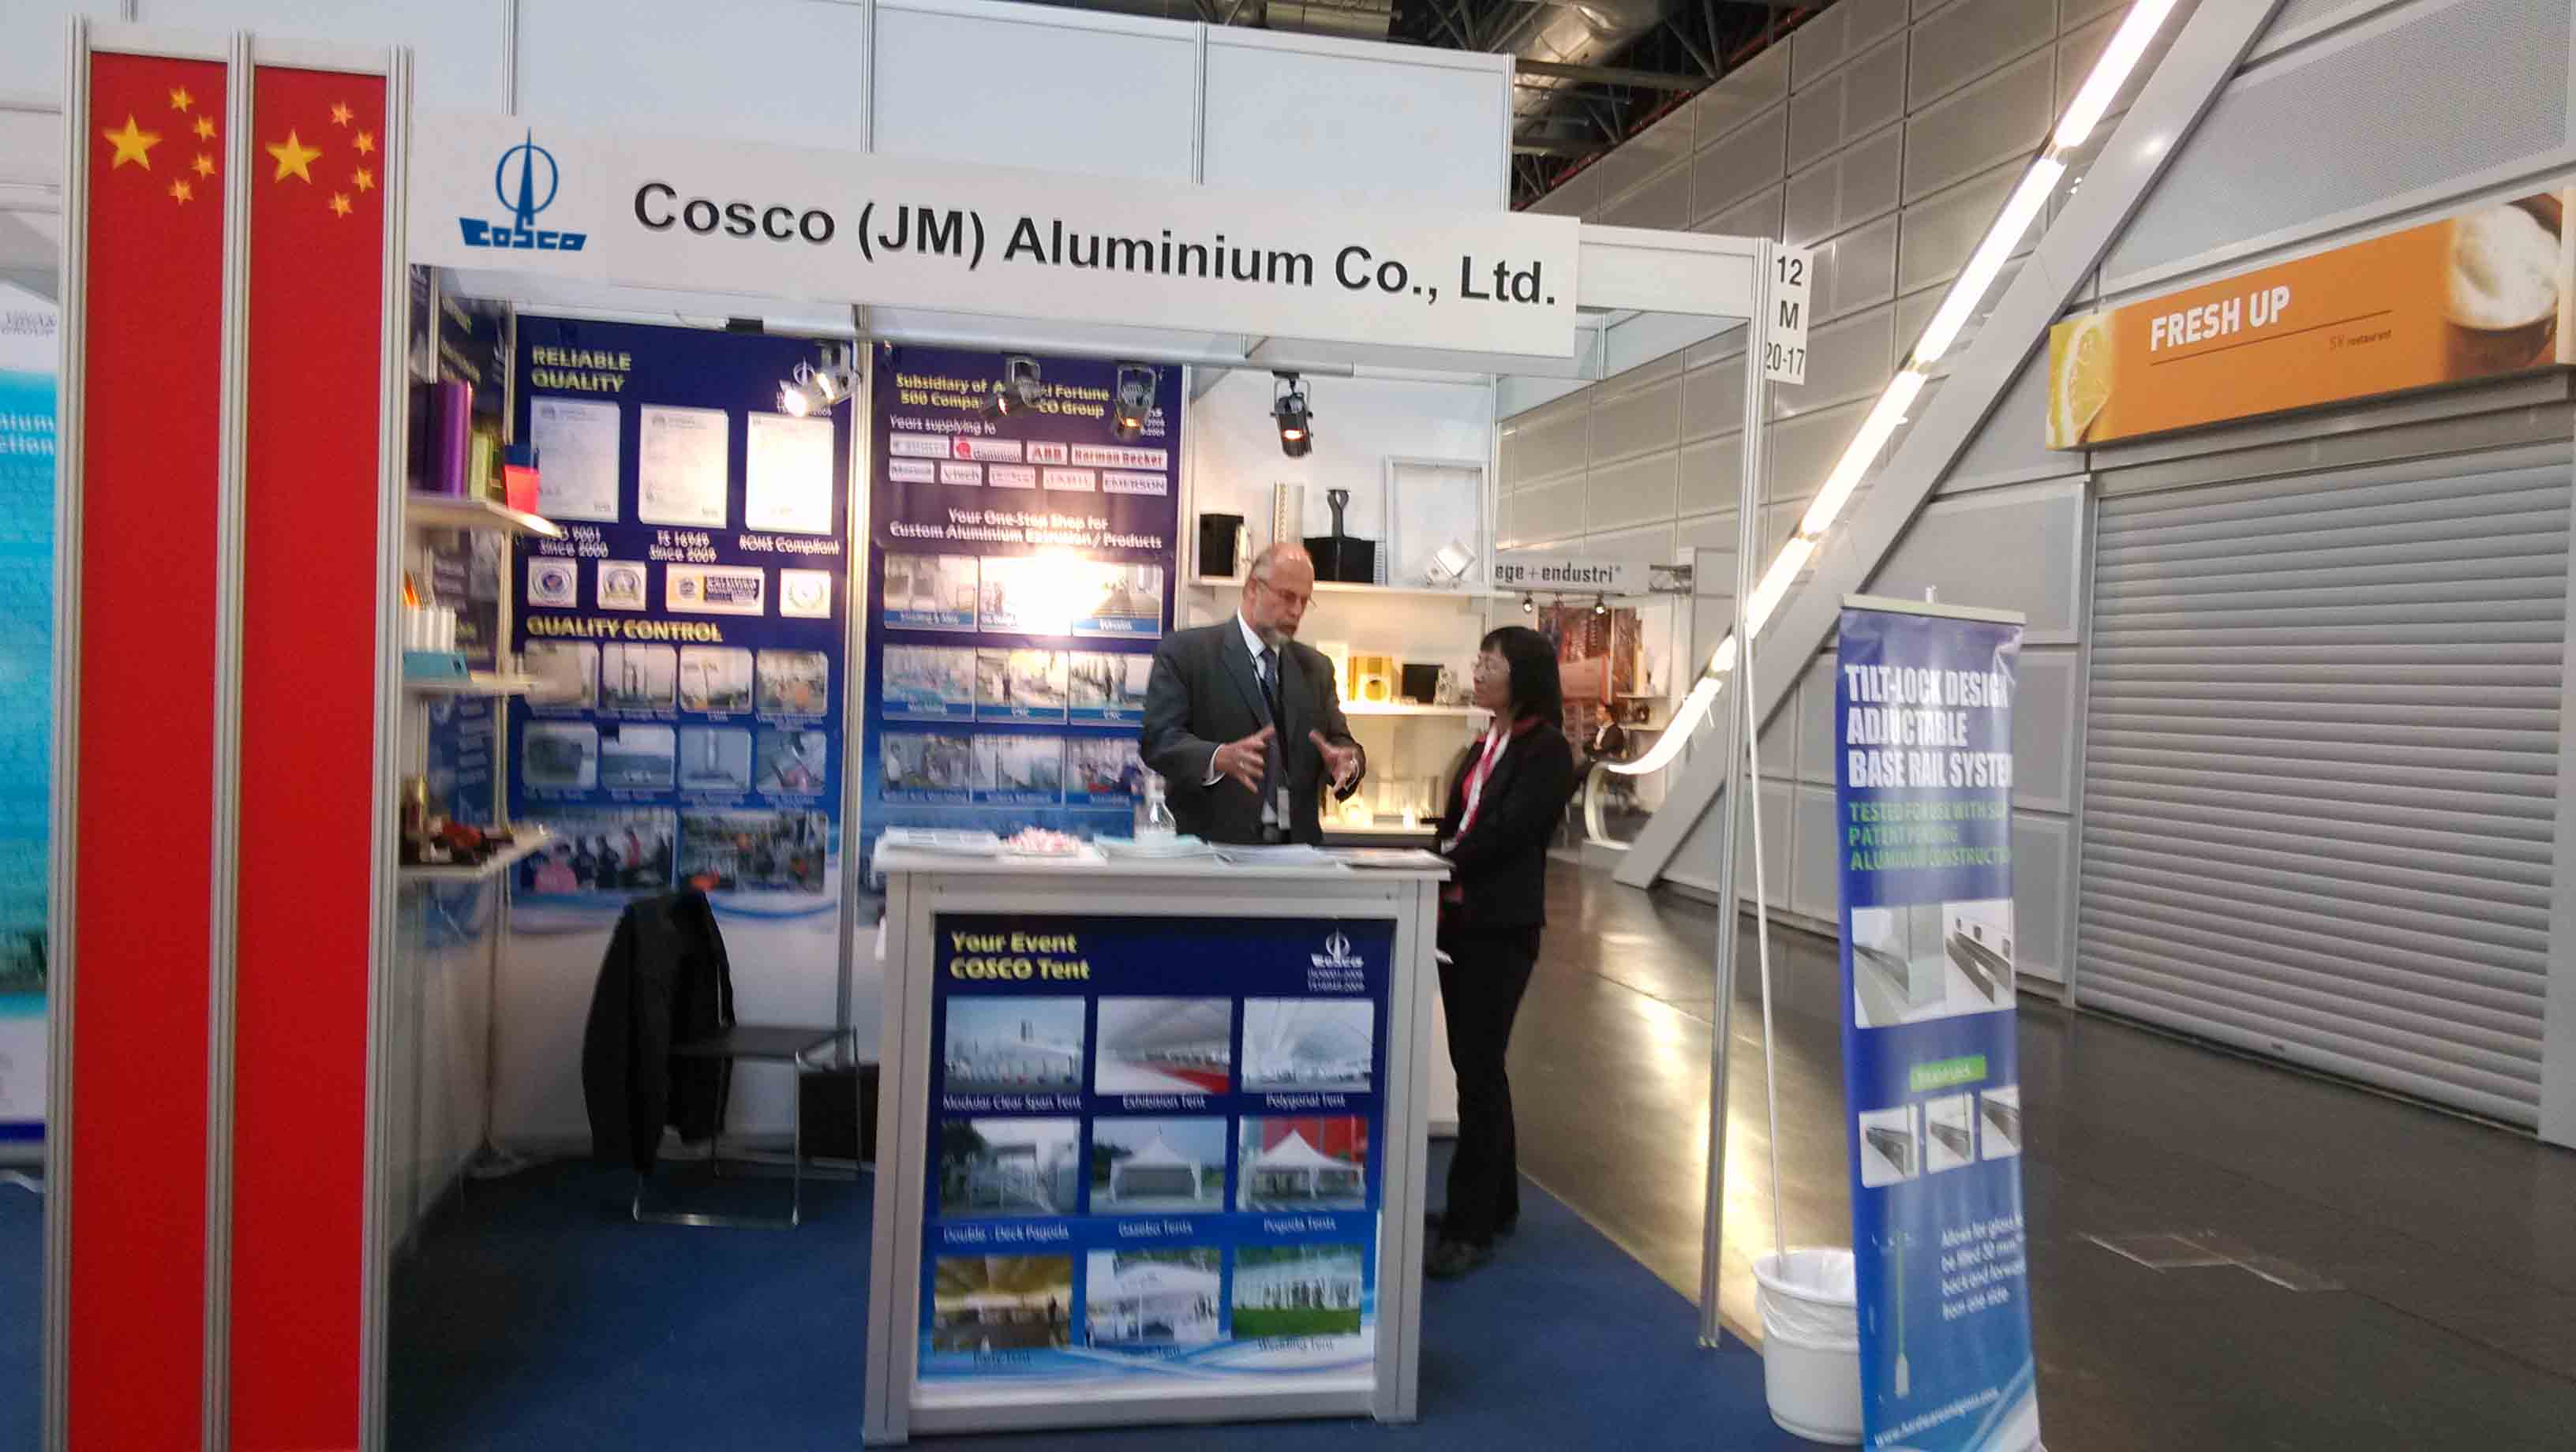 ALUMINIUM 2014, Messe Dusseldorf, Germany